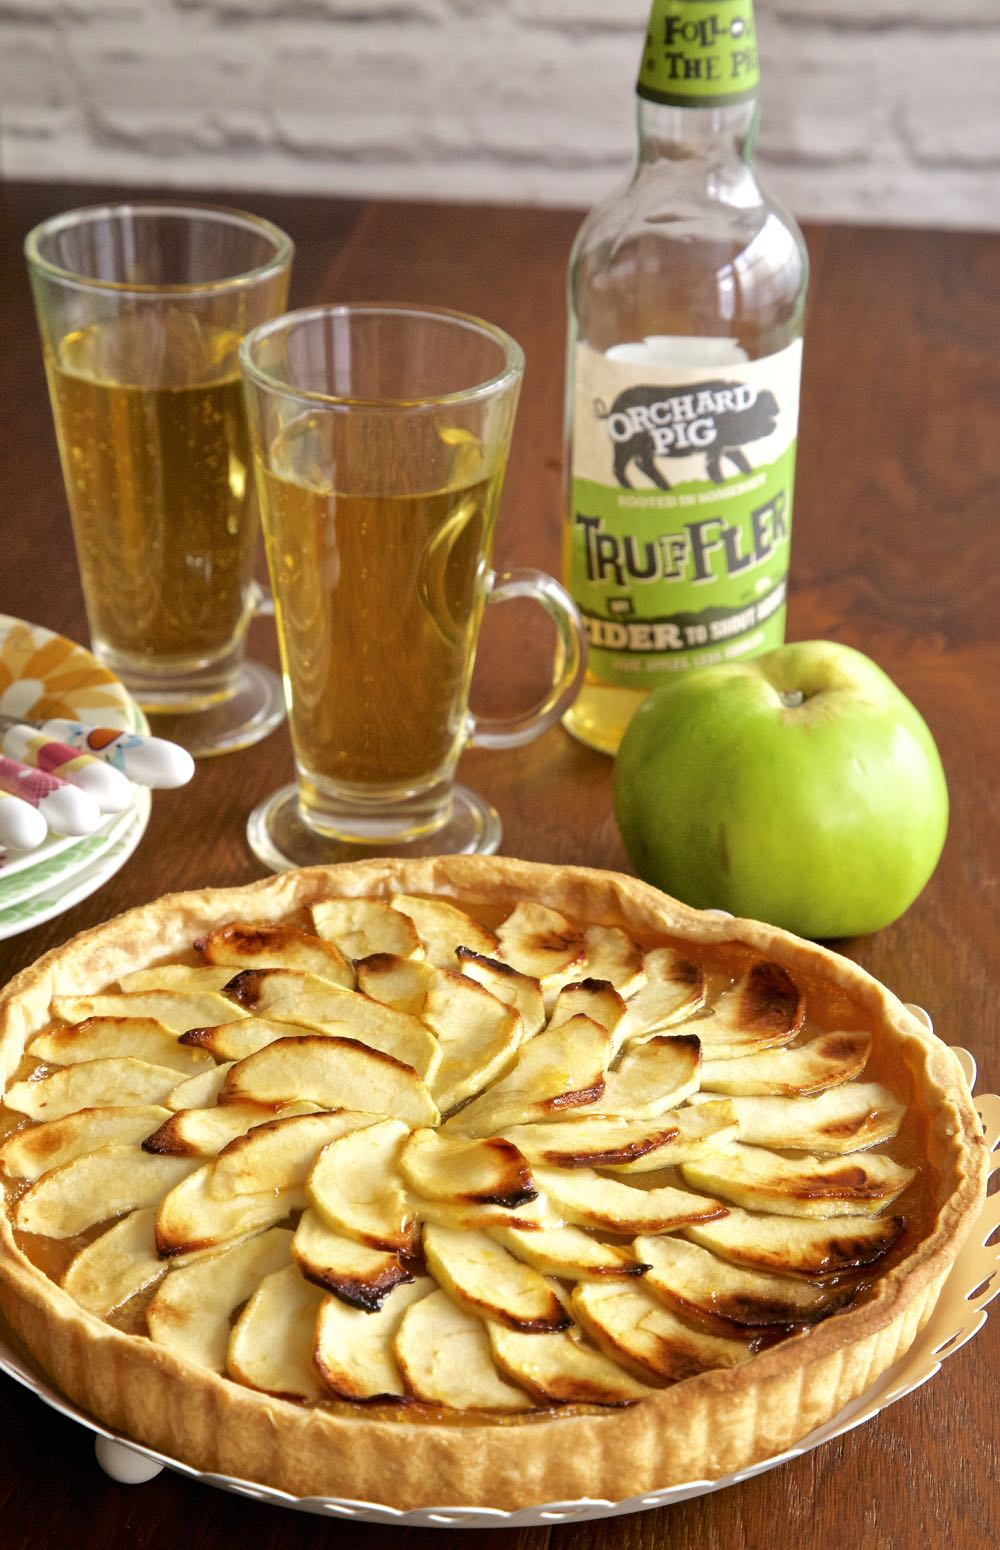 Rustic Cider and Apple Tart.